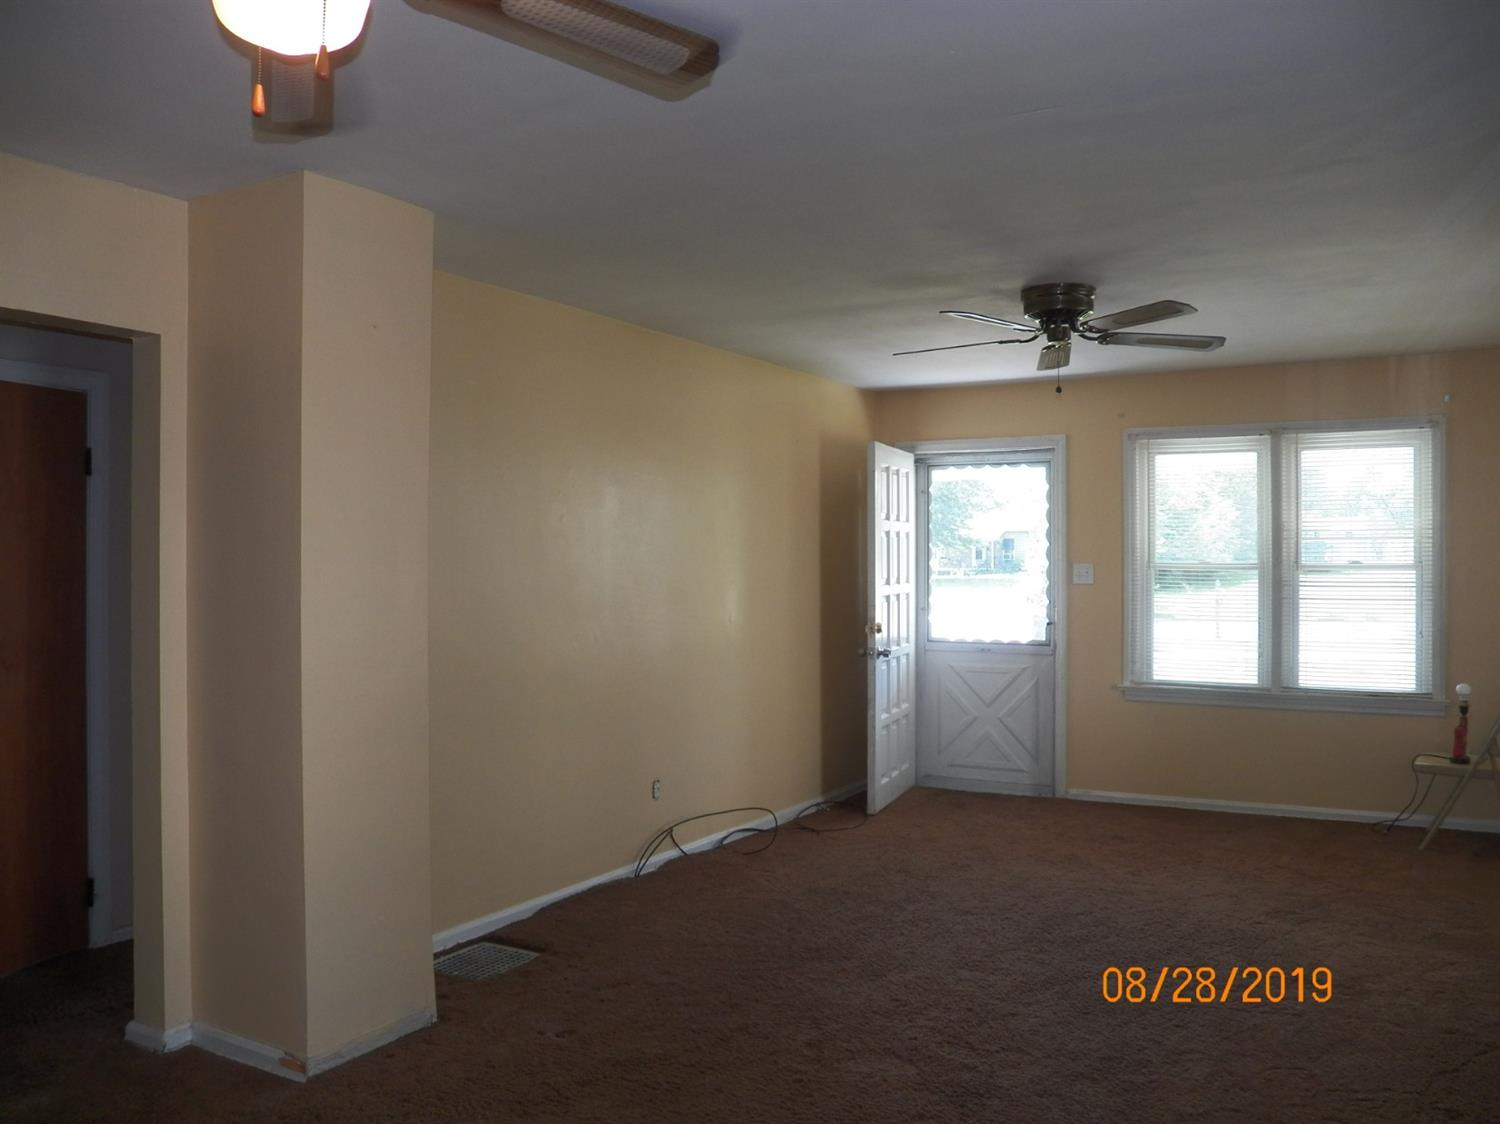 Photo 3 for 3103 Yankee Rd Middletown South, OH 45044